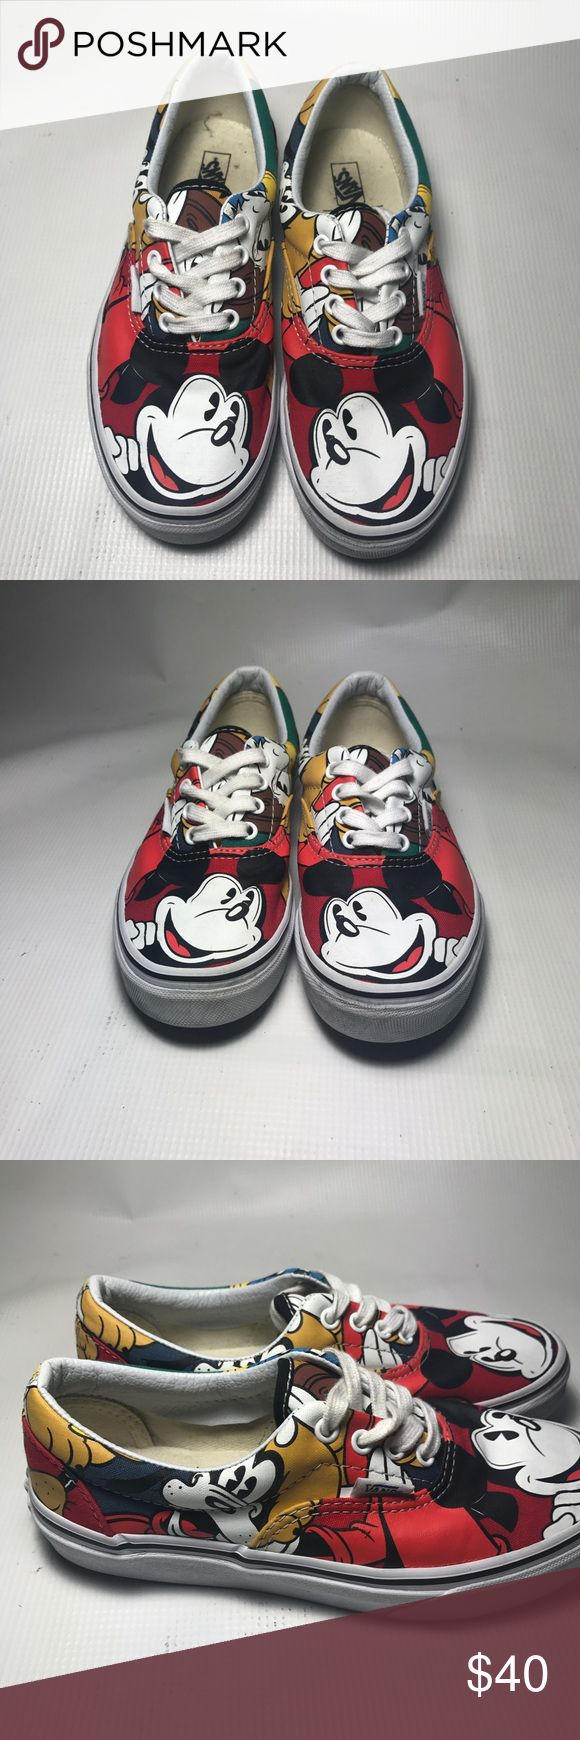 Disney Vans Amazing Vans on great condition and price !! These are perfect for boy and girl. Condition 10/10. Cleaned in and out. Vans Shoes Sneakers